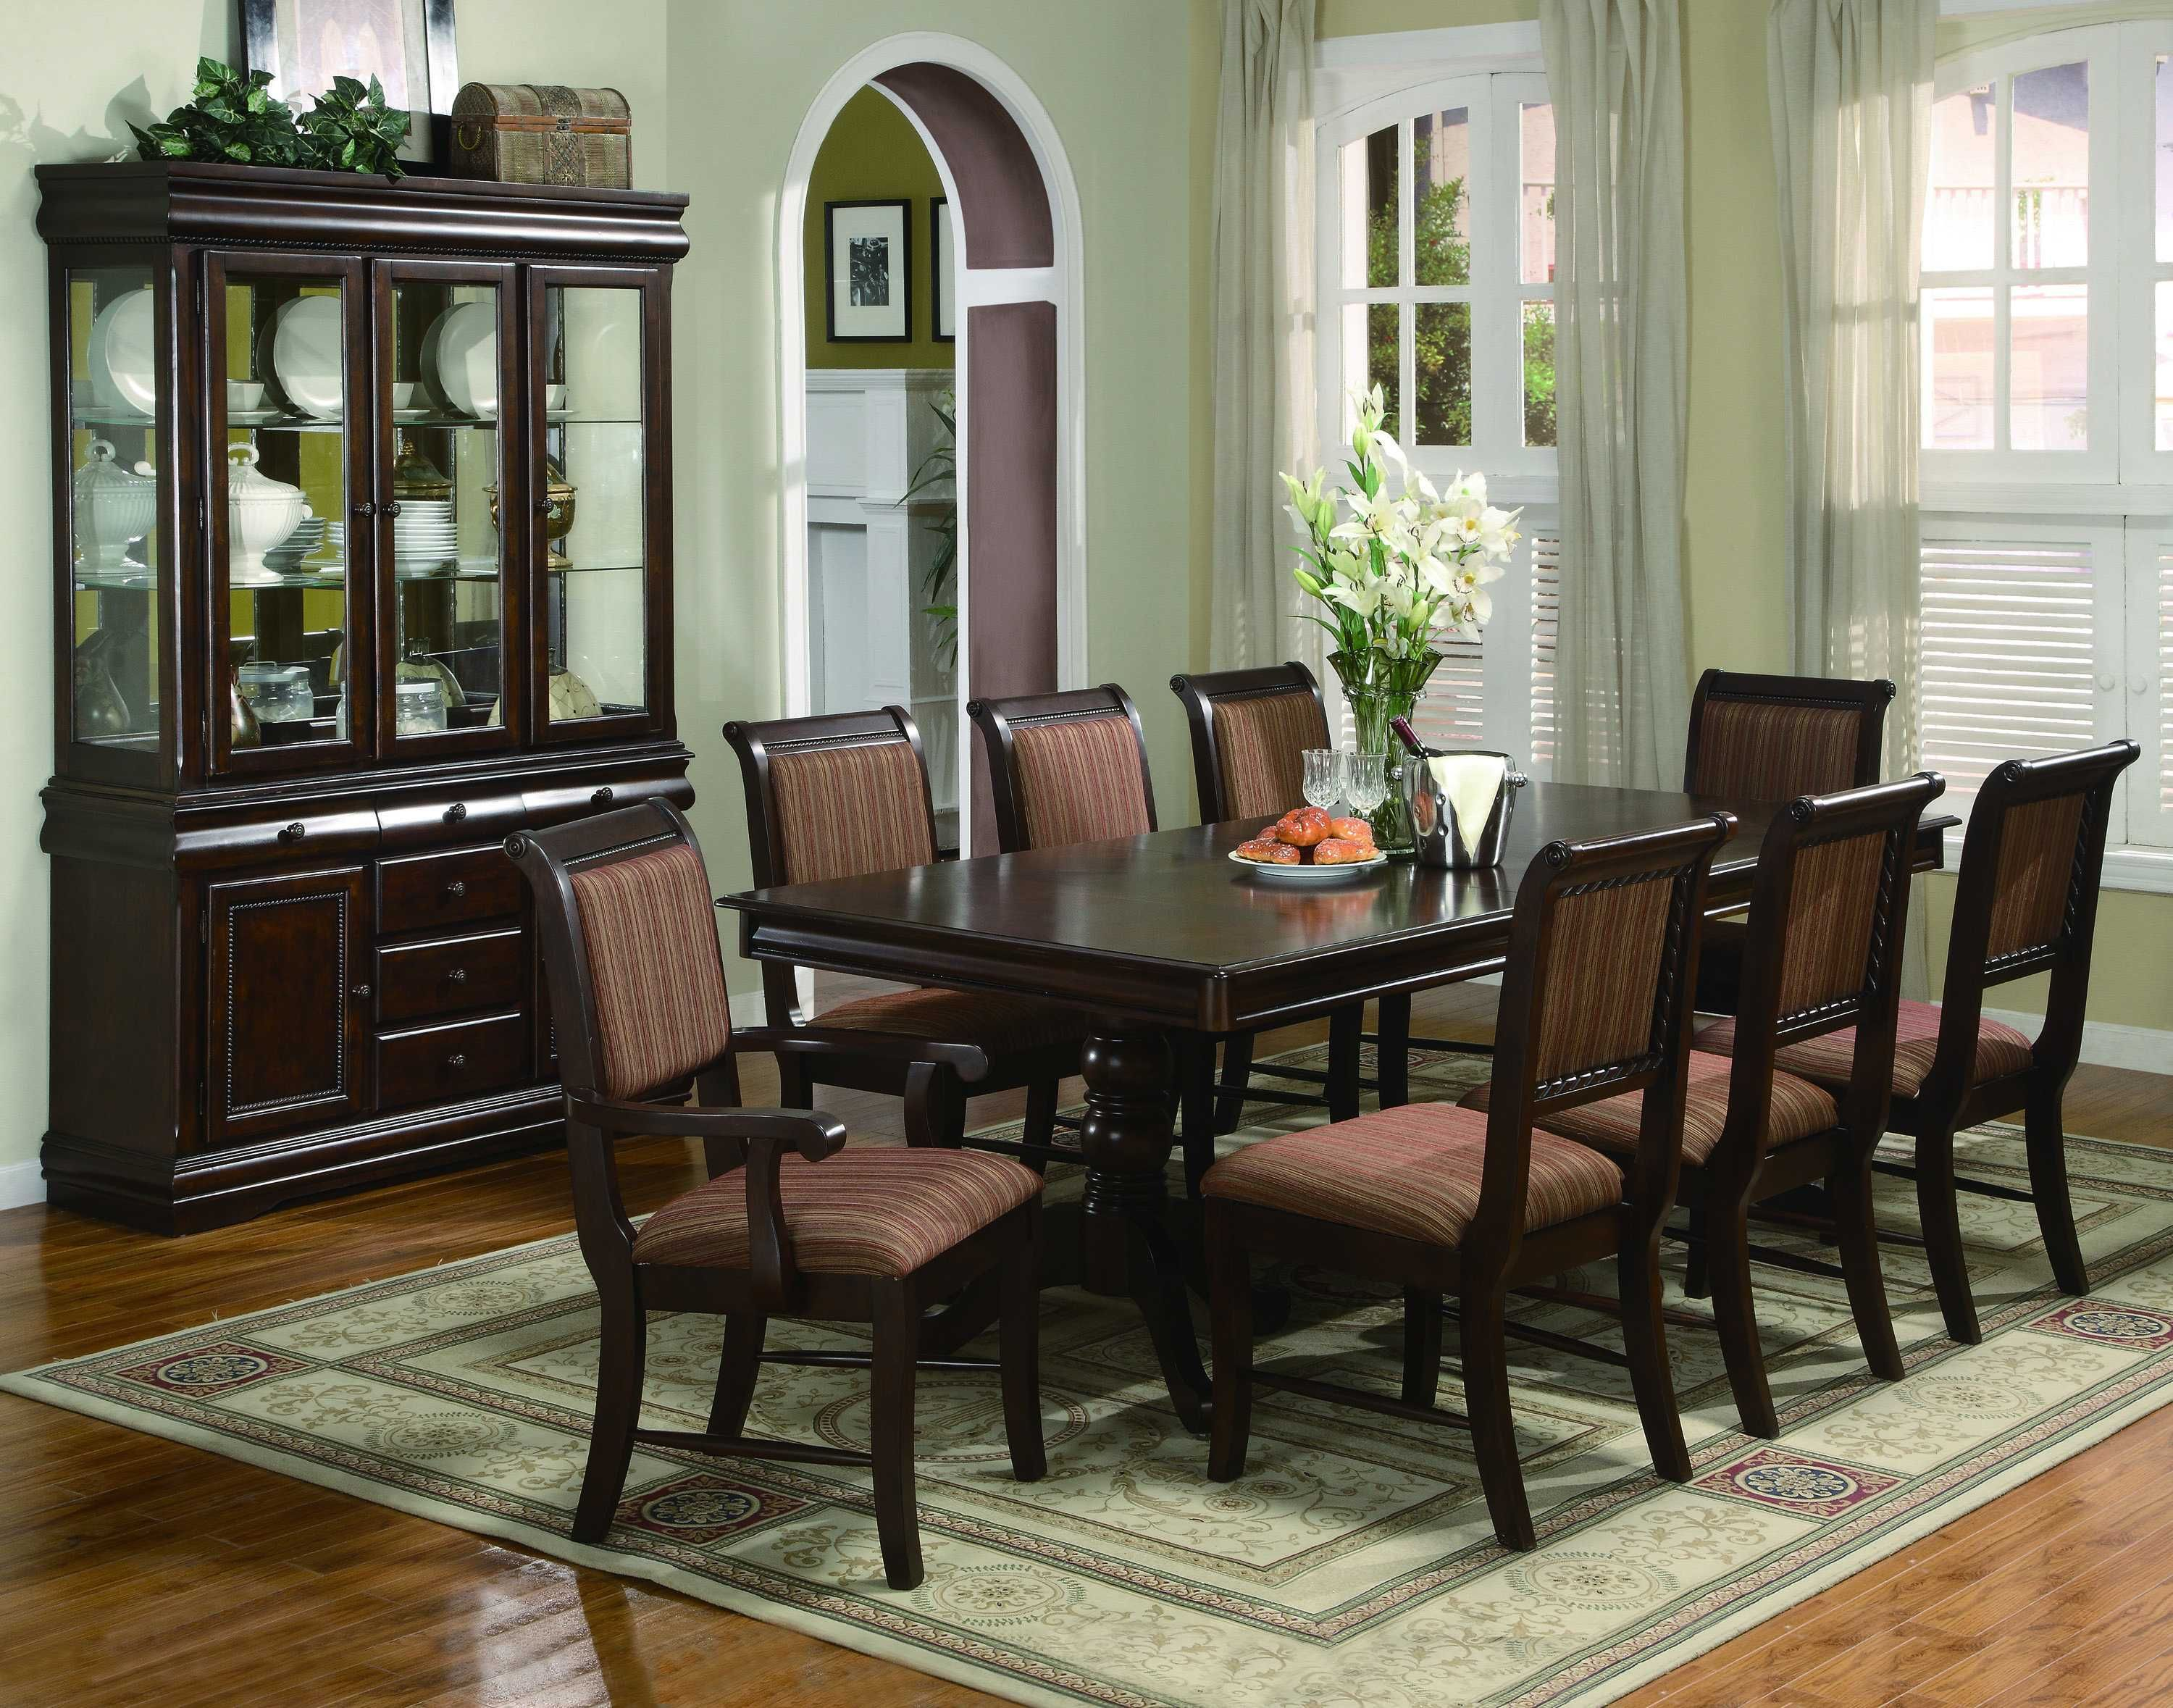 The living room is one of the most important areas in your house for a great hosting experience. Traditional Formal Dining Room Sets - 2019   Formal dining ...